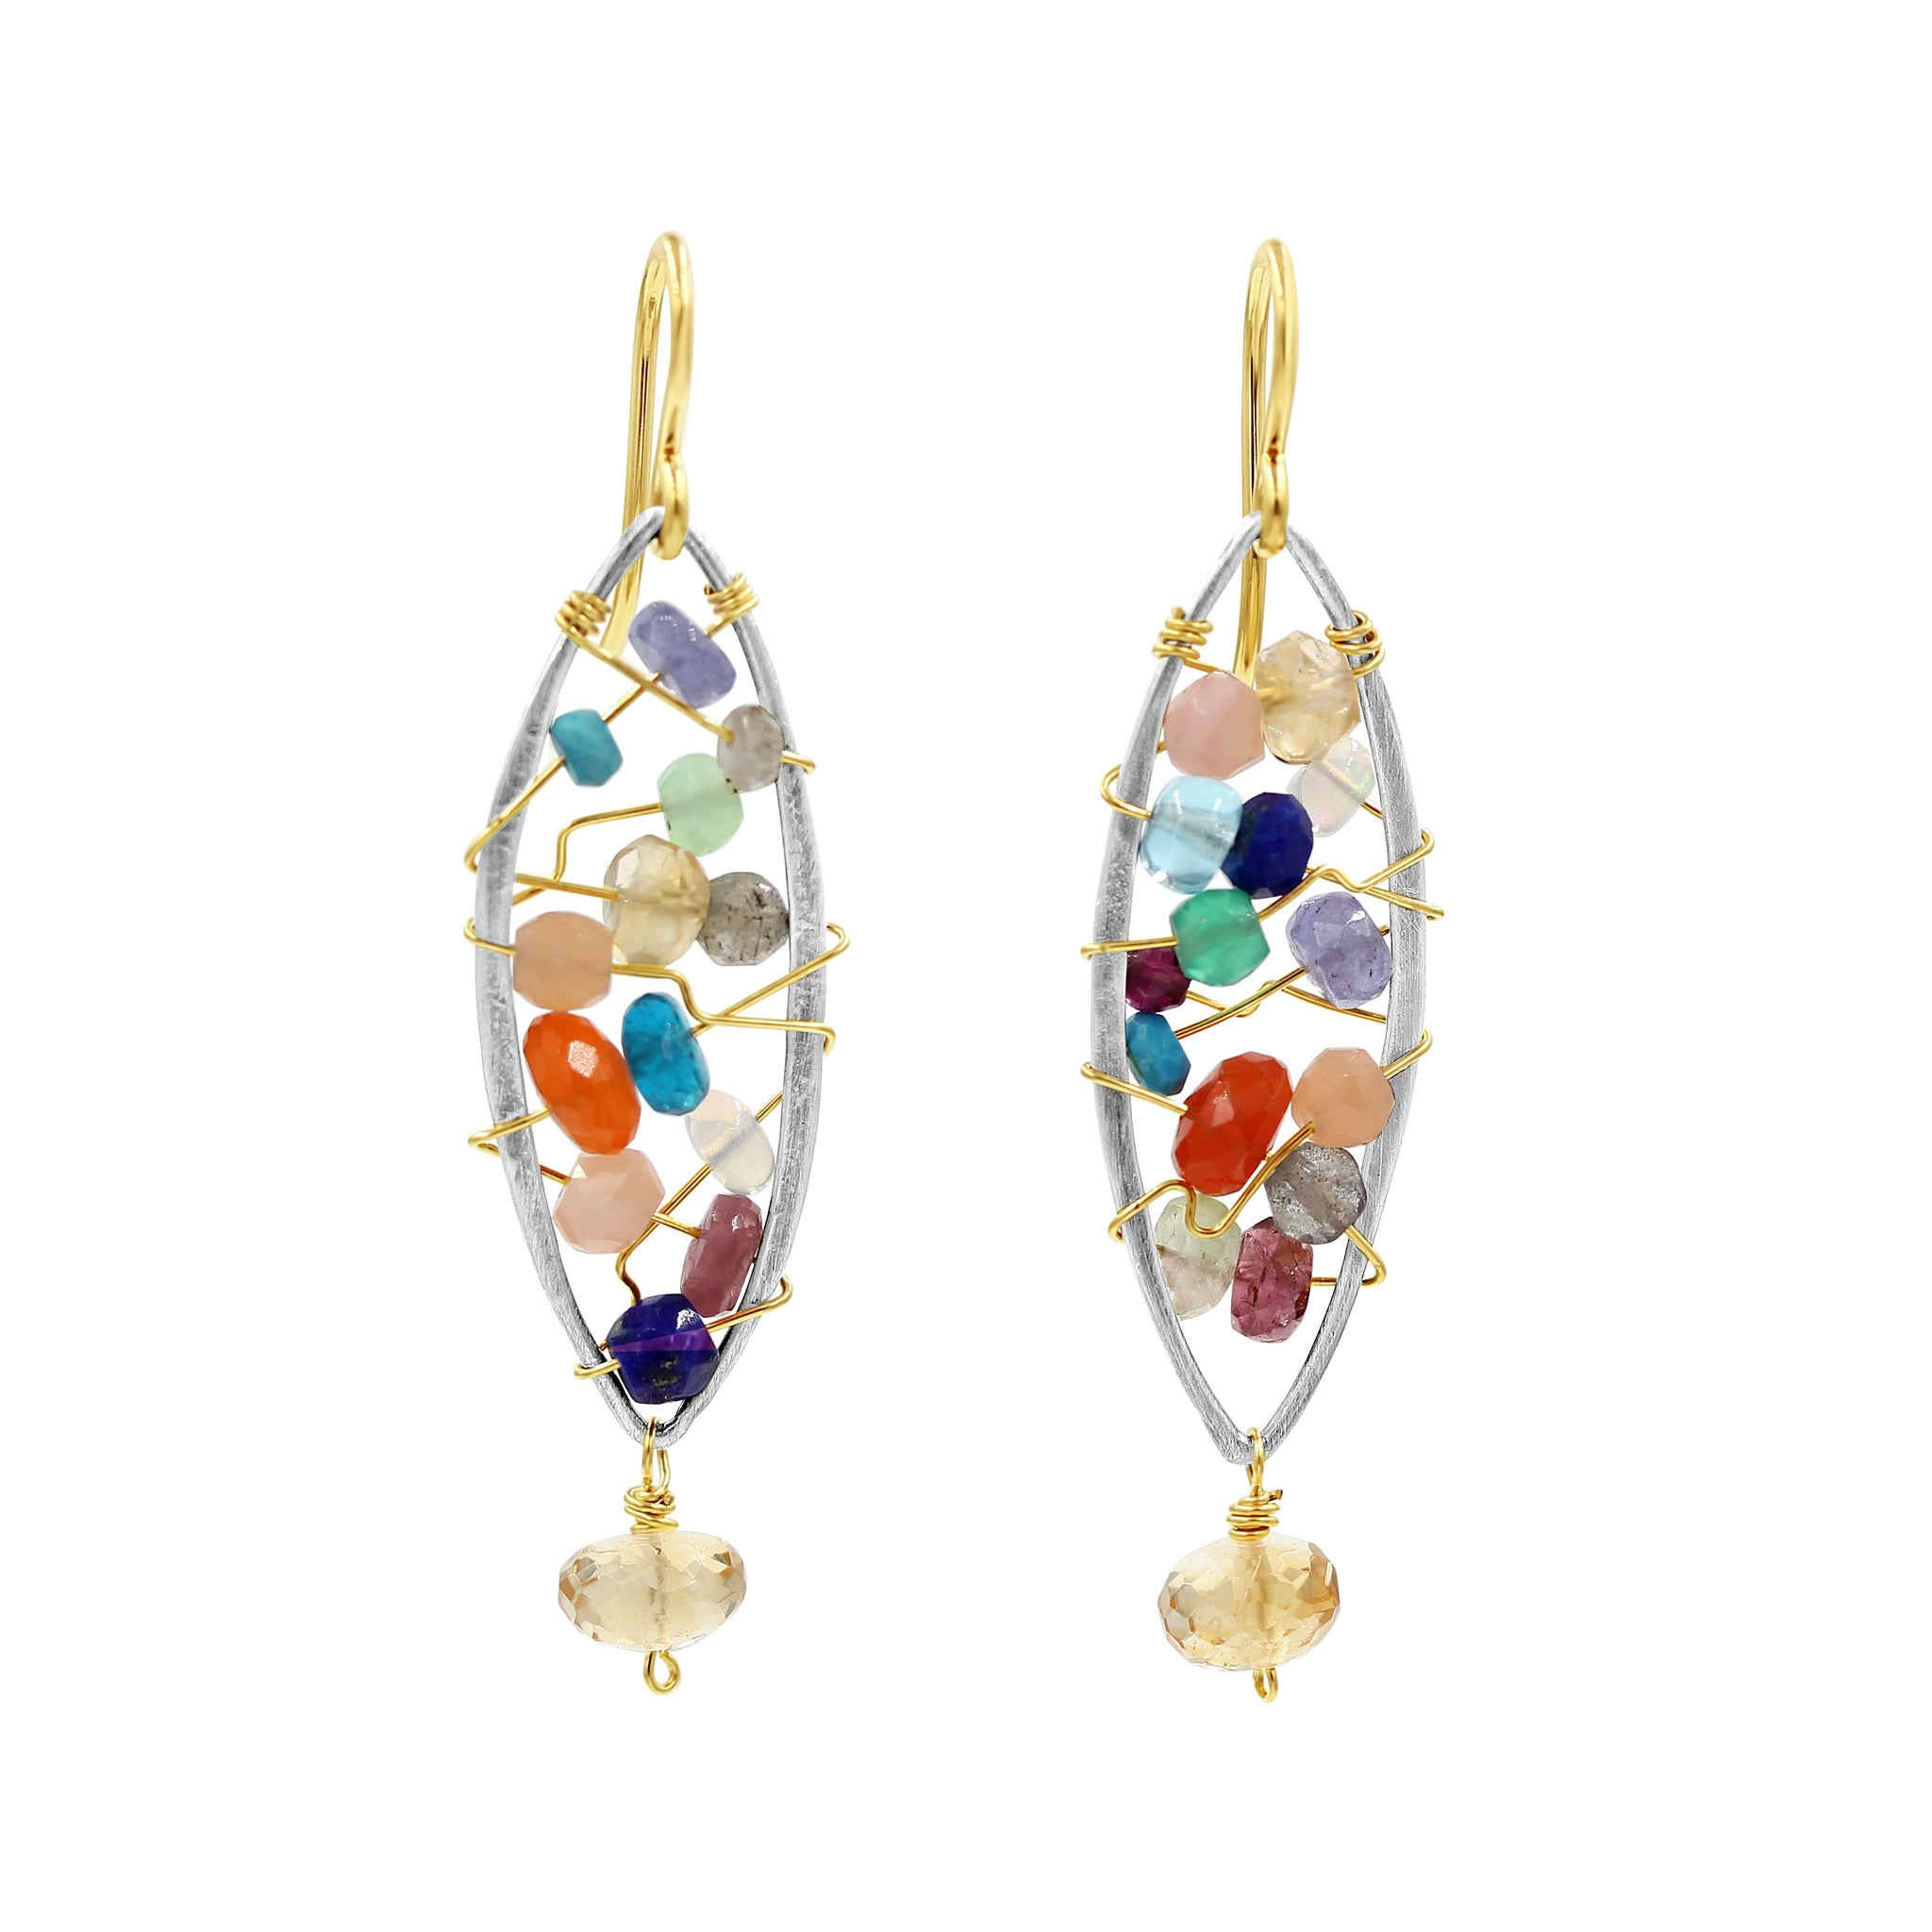 Anita Multi Gemstone Earrings - Sati Gems Hawaii